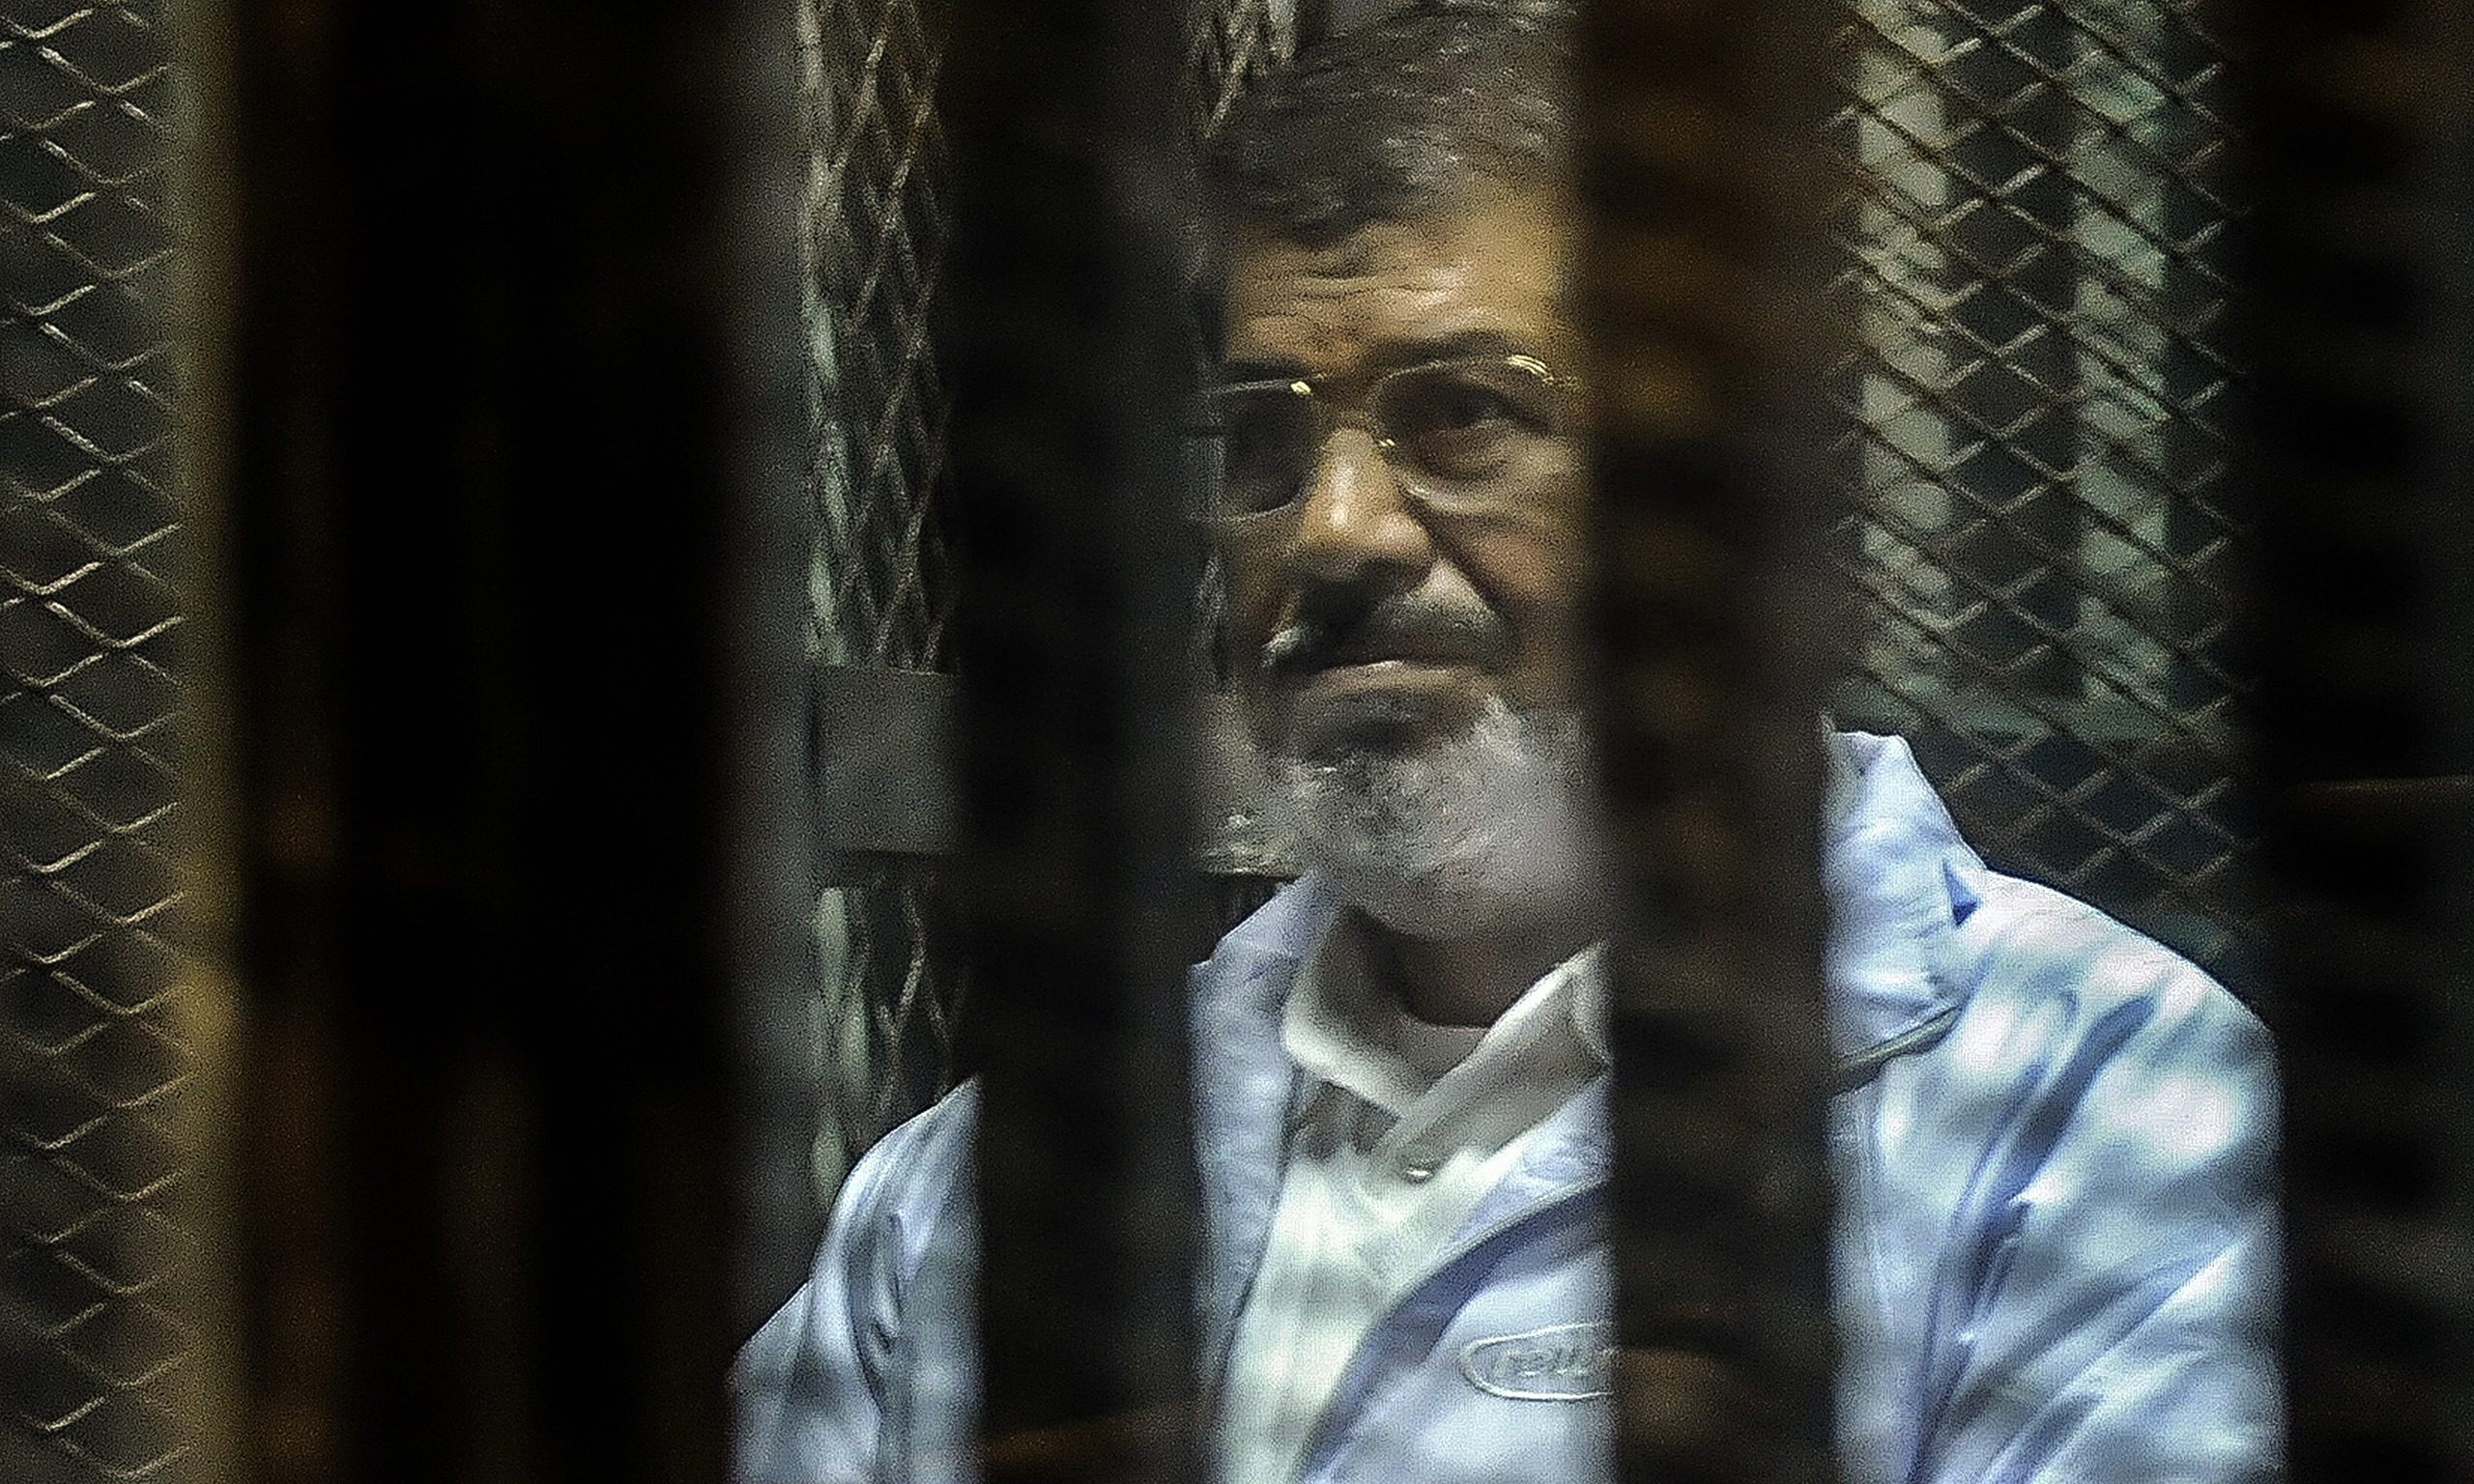 mohammed morsi Read more about egypt's mohamed morsi sentenced to 3 yrs in jail for 'insulting judiciary' on business standard morsi had already been sentenced to a total of 45 years in prison in two other trials after the military ousted him in 2013.